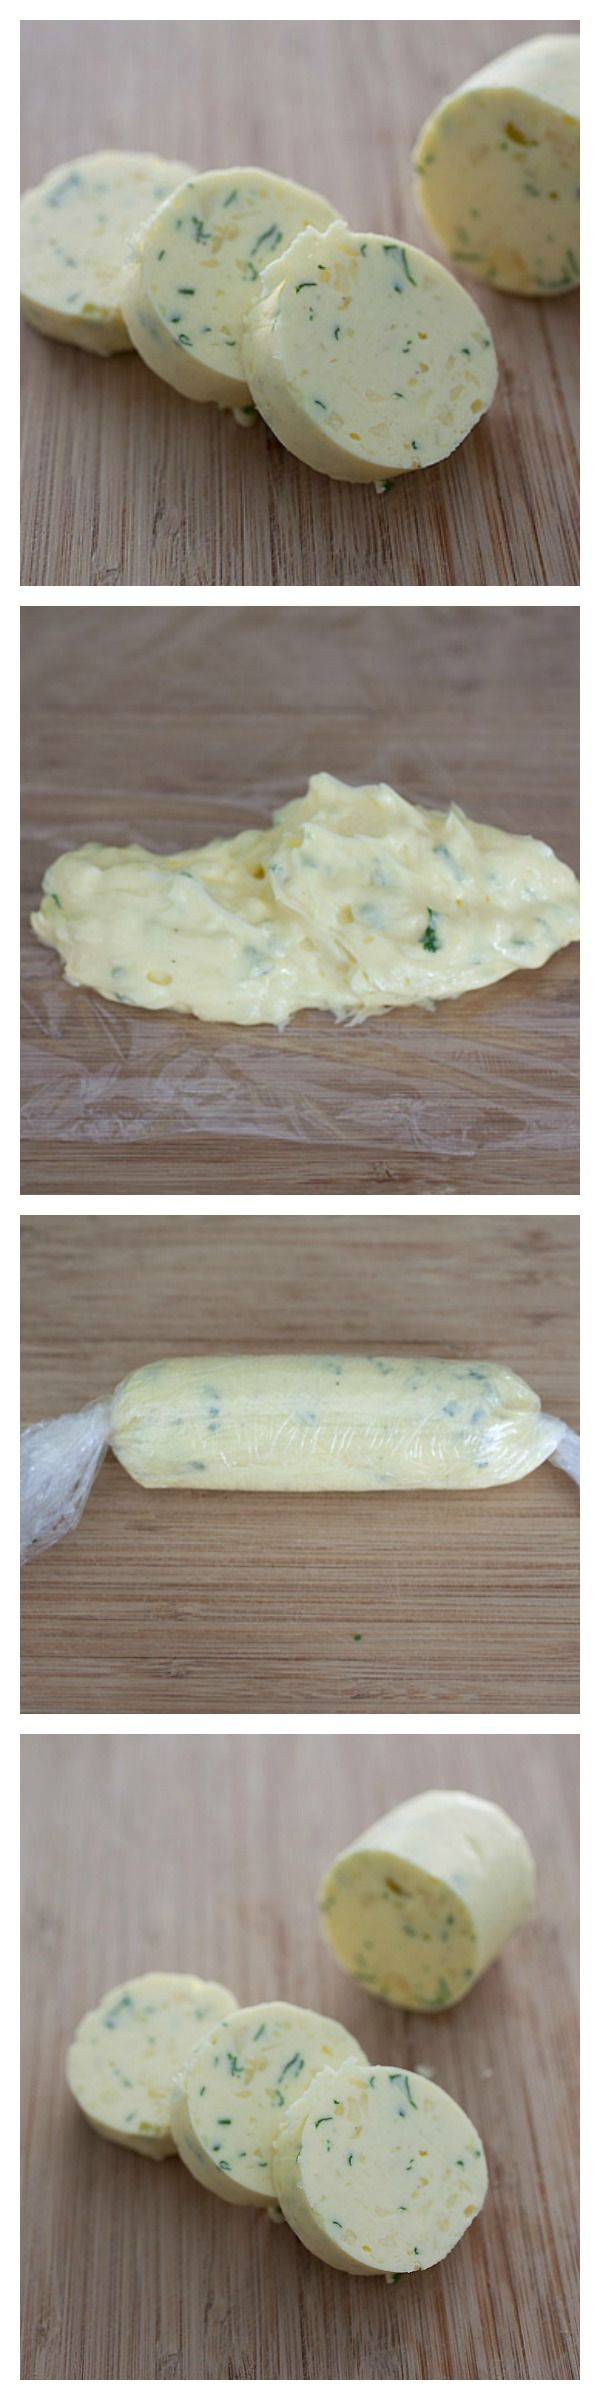 Homemade Garlic Herb Butter Recipe